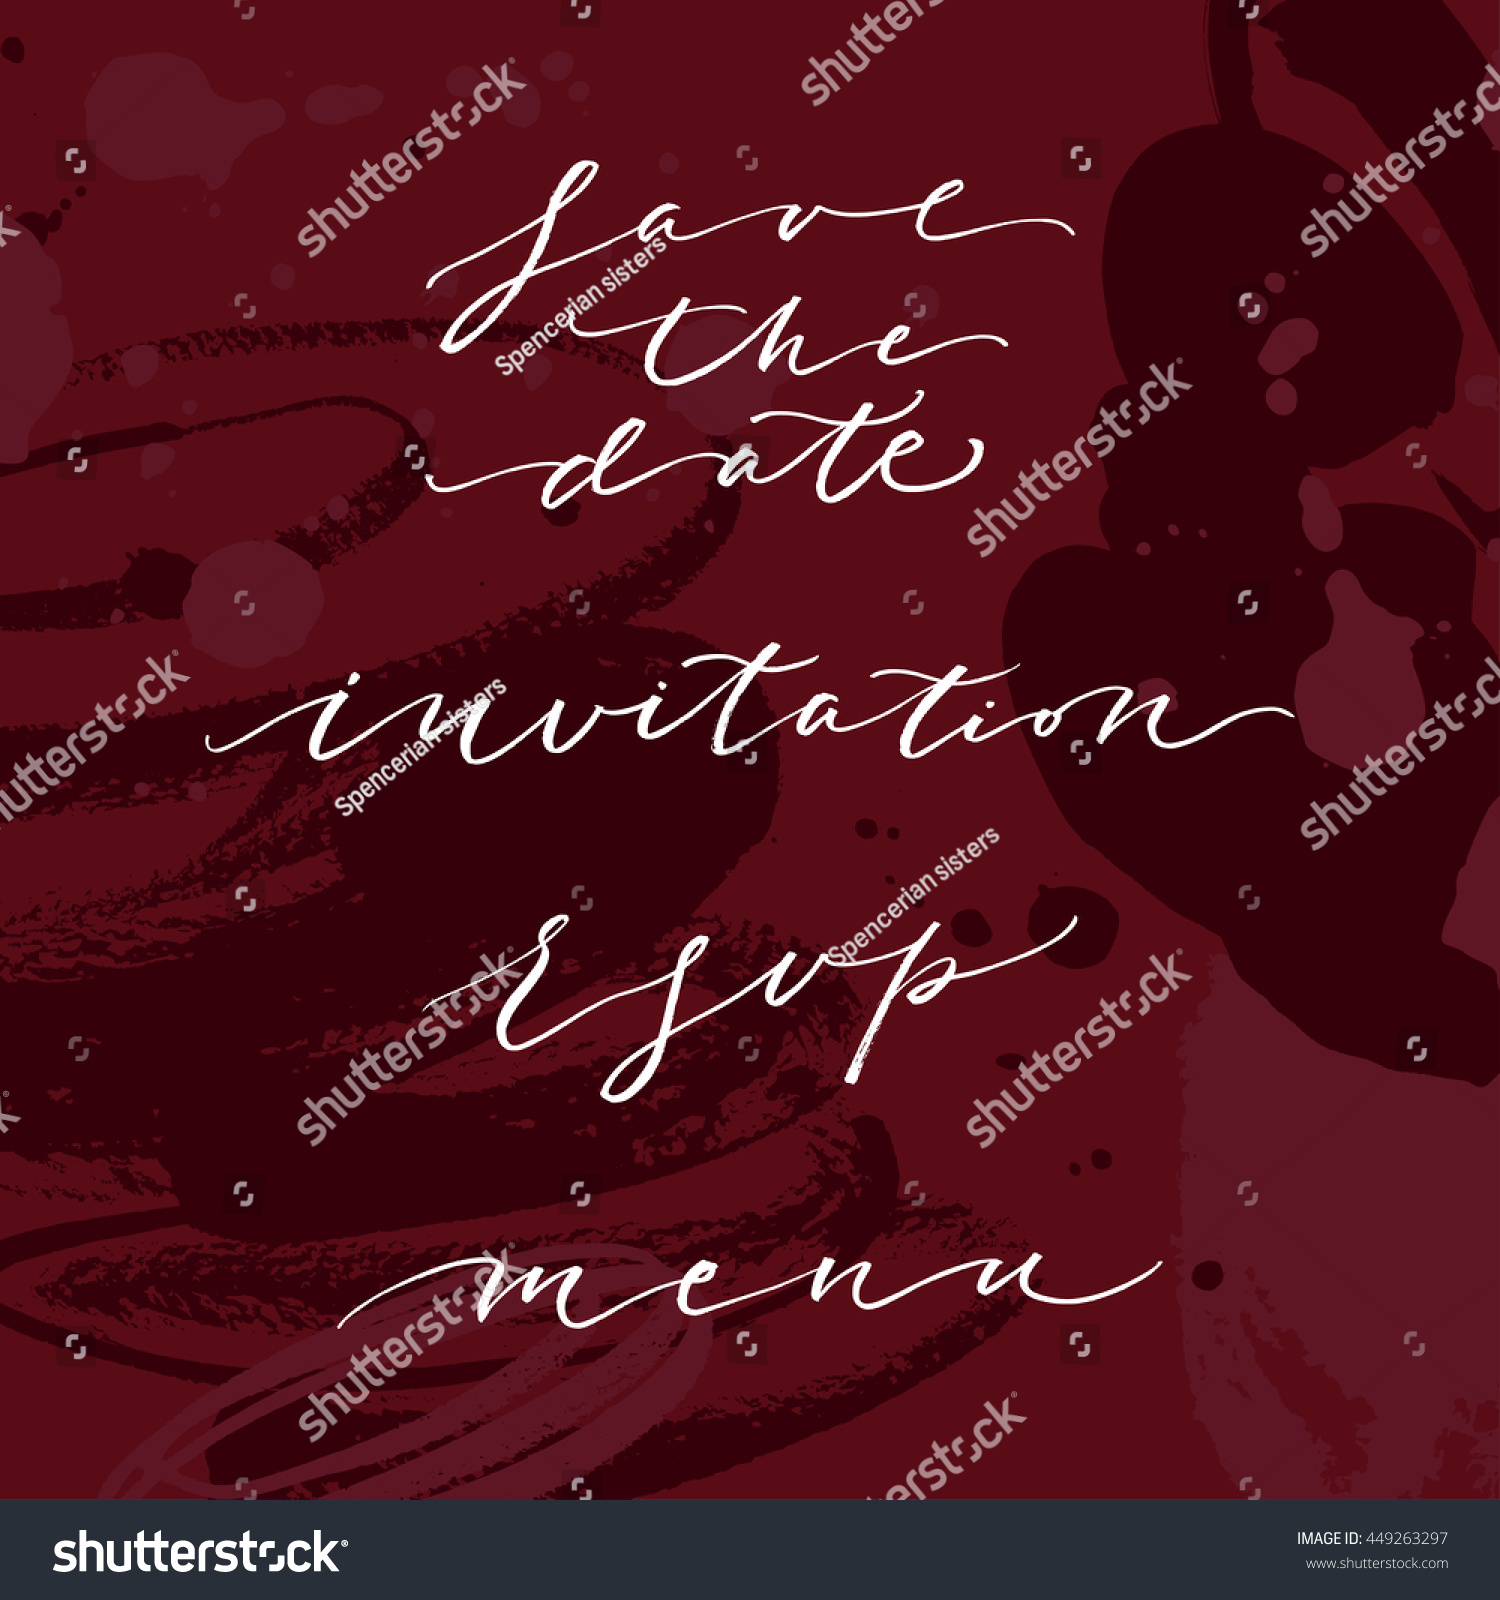 Wedding Save Date Invitation Phrases Words Stock Vector (Royalty ...